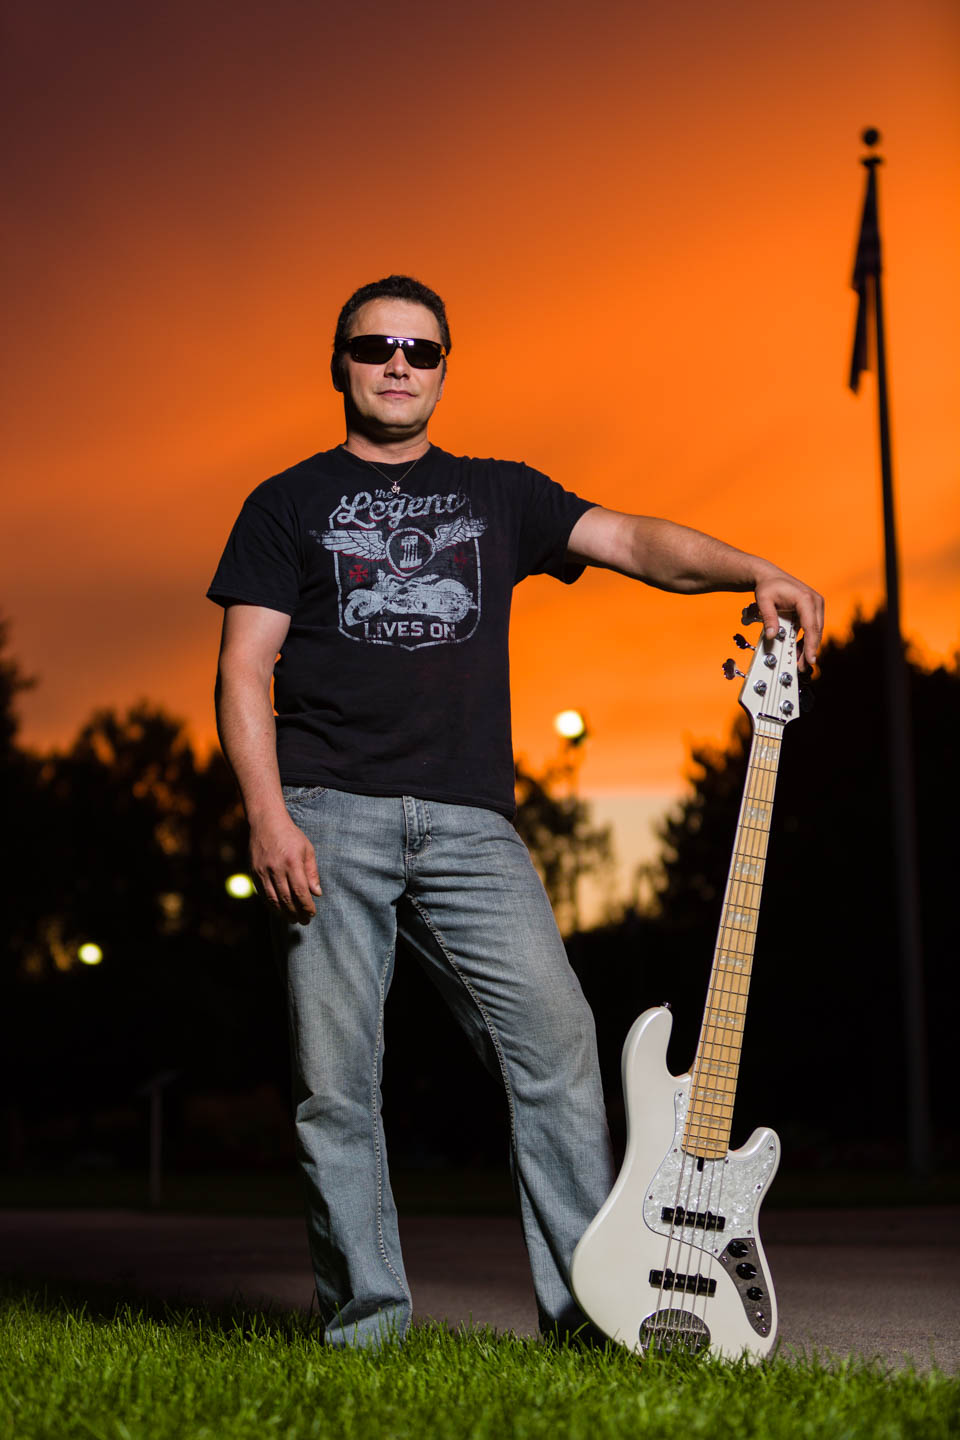 Sunset was perfect for some photographs with the bass guitar and sunglasses